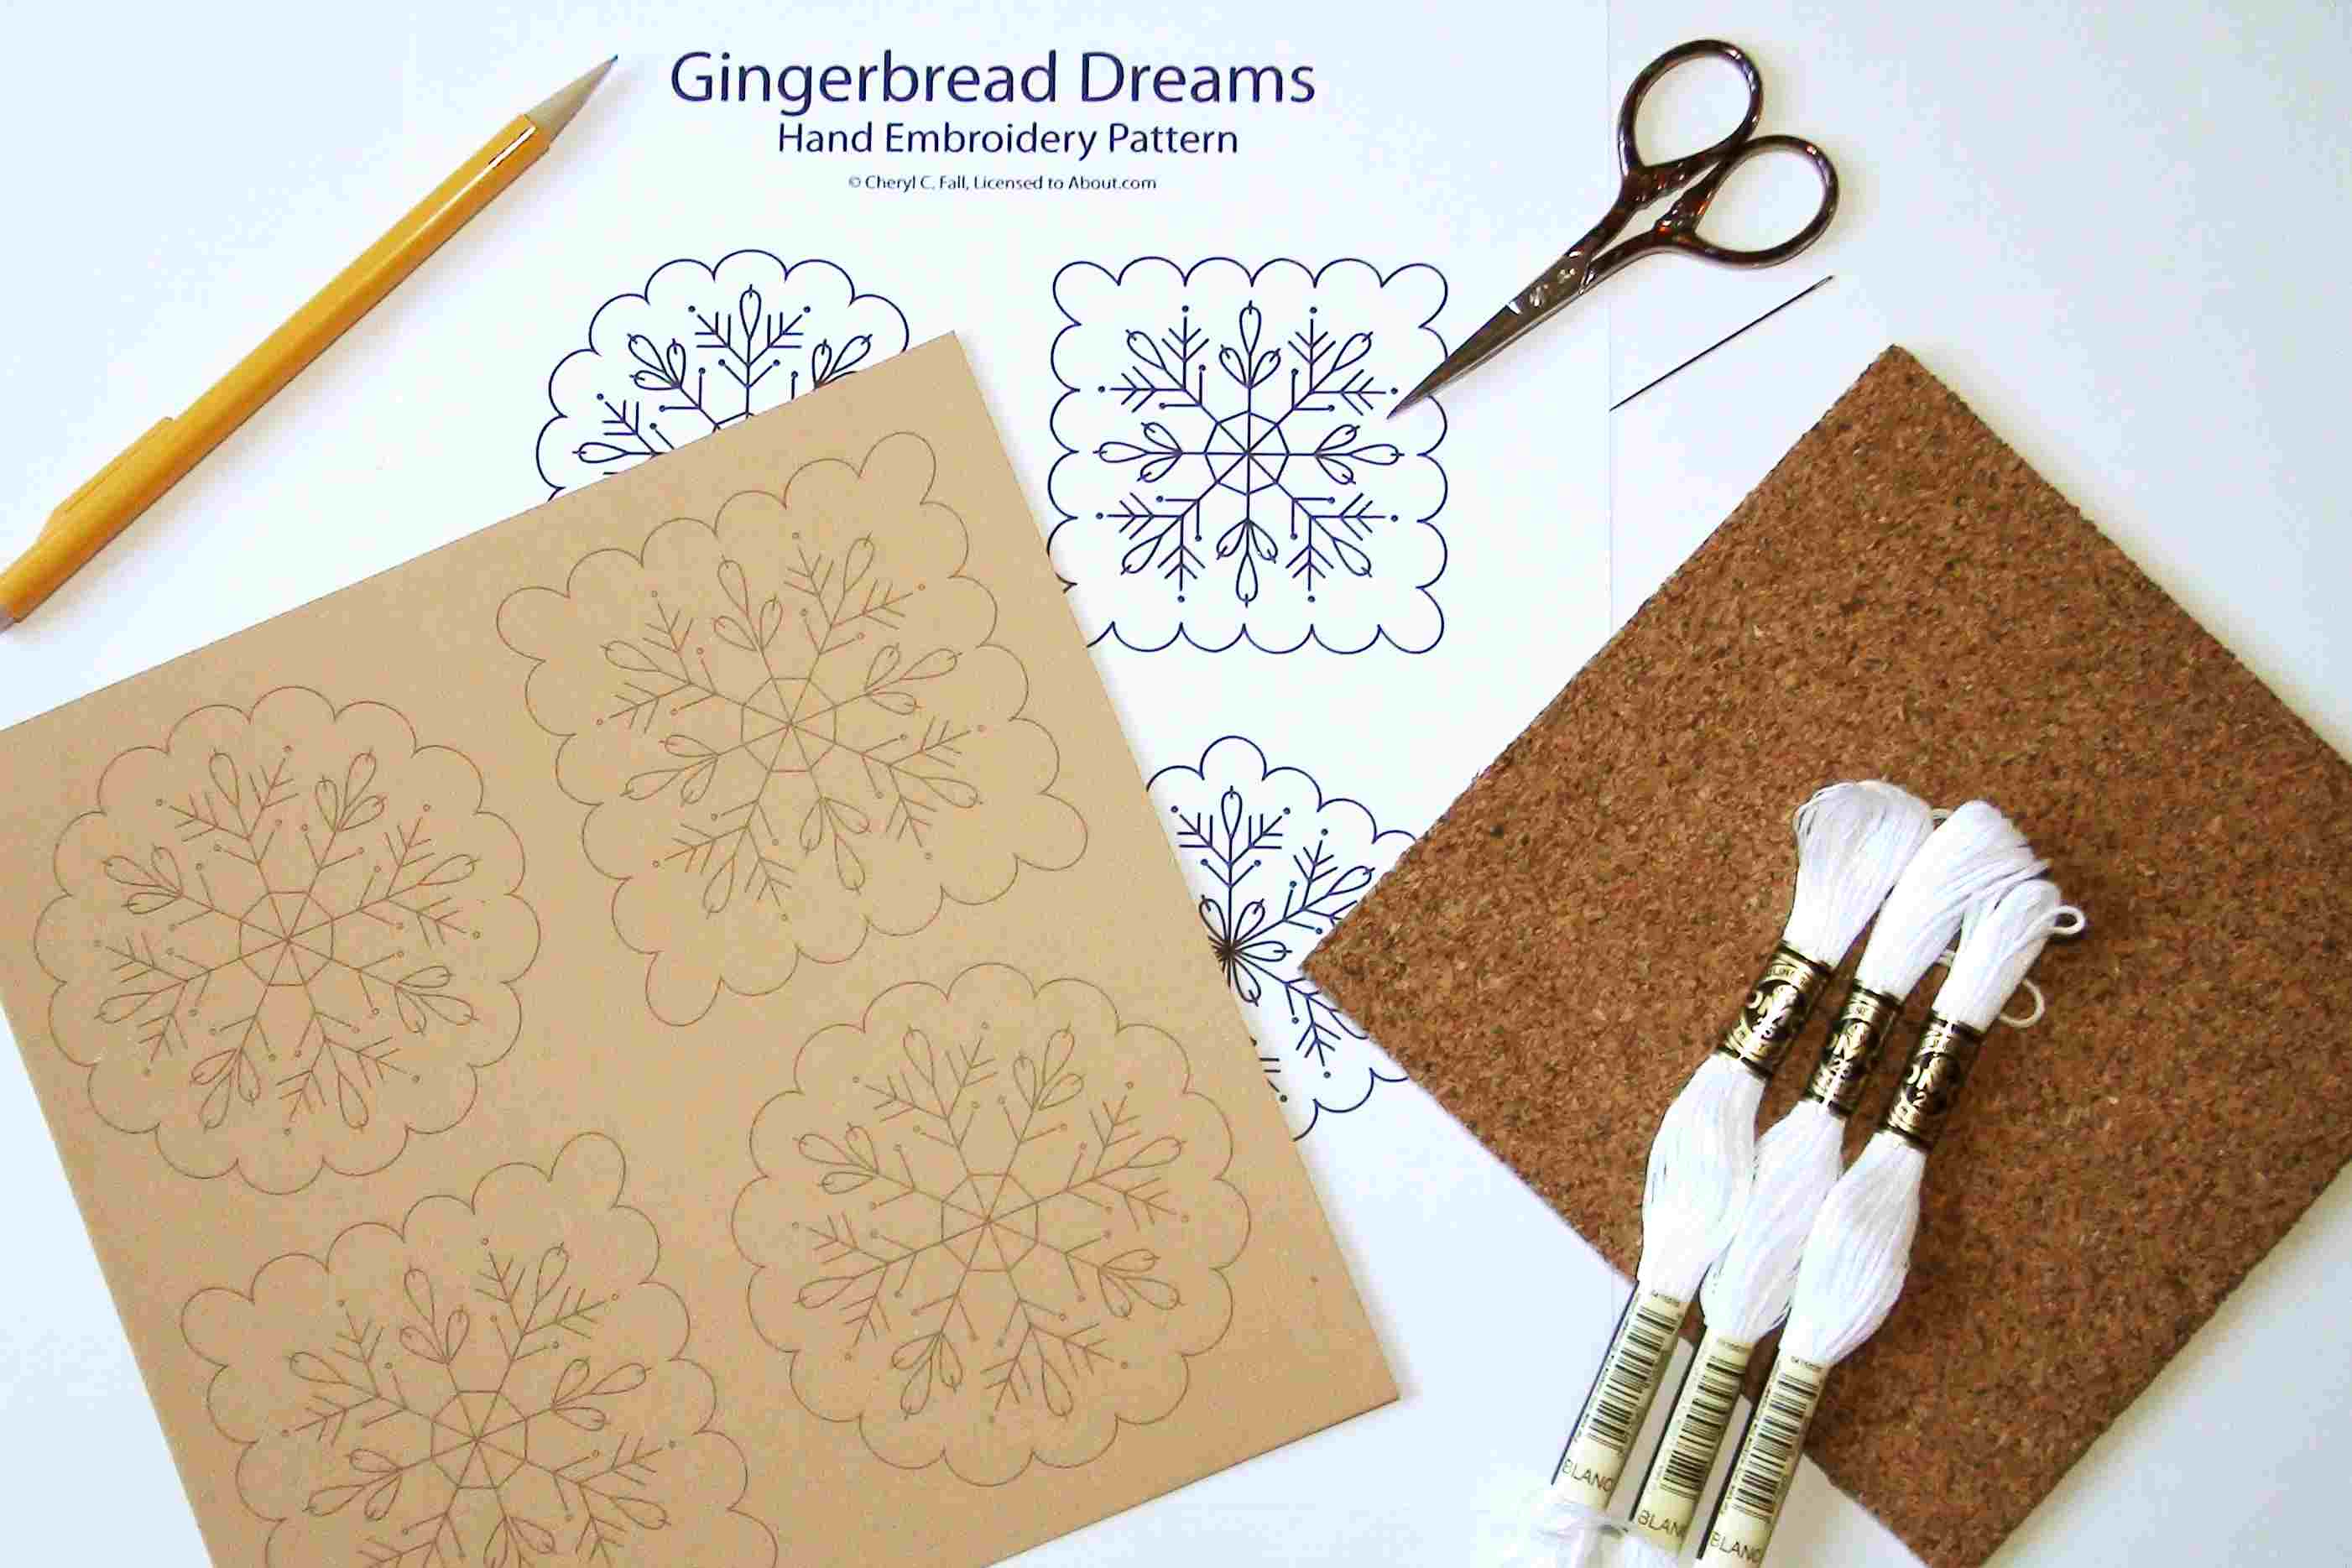 Supplies for Embroidering on Paper